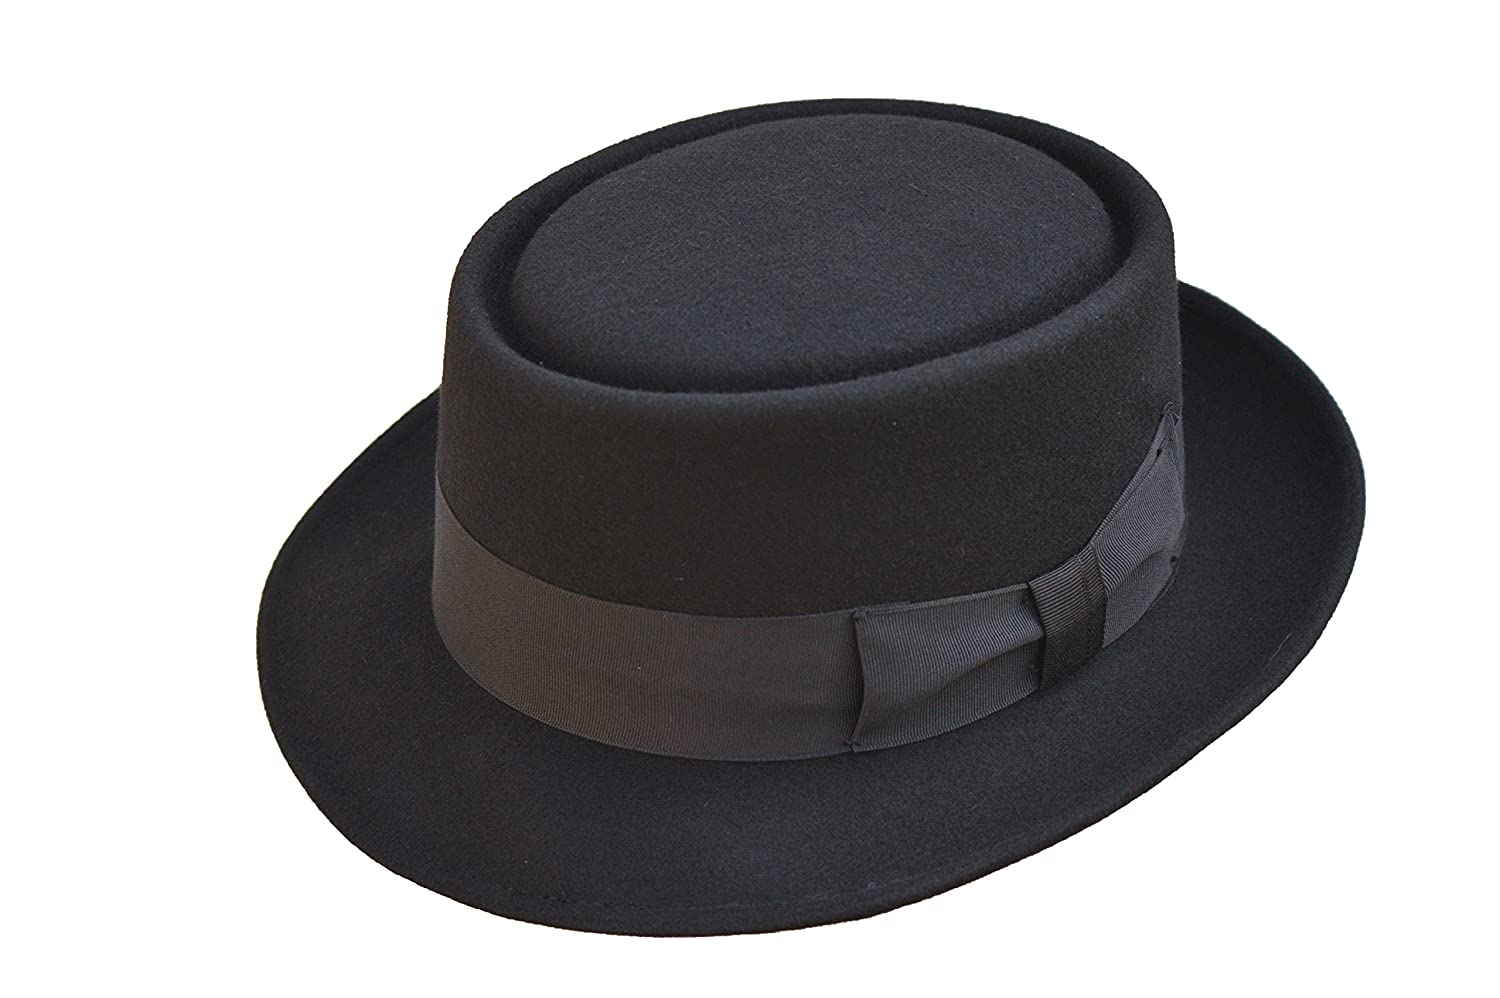 Black High Quality Hand Made 100% Wool Felt Porkpie Trilby Hat With Black Band VIZ-UK WEAR PORK PIE